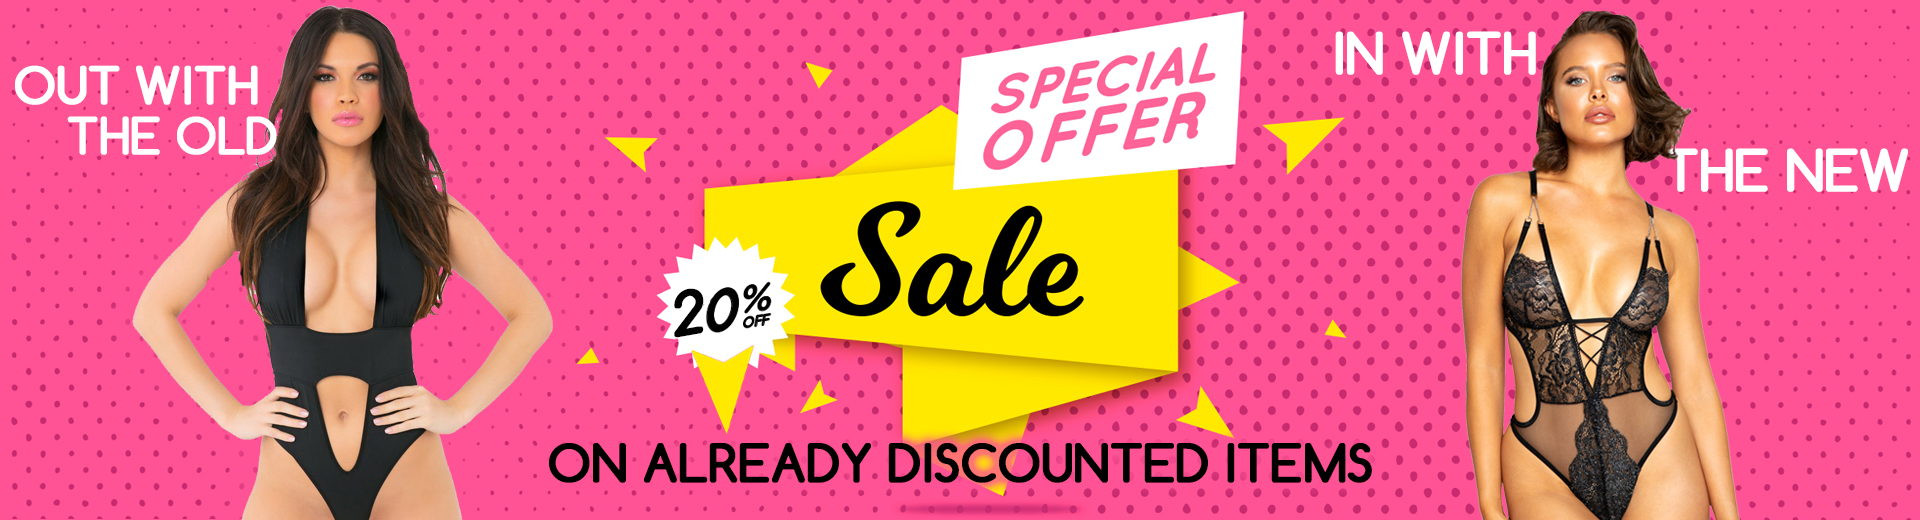 extra 20% off on all sale items